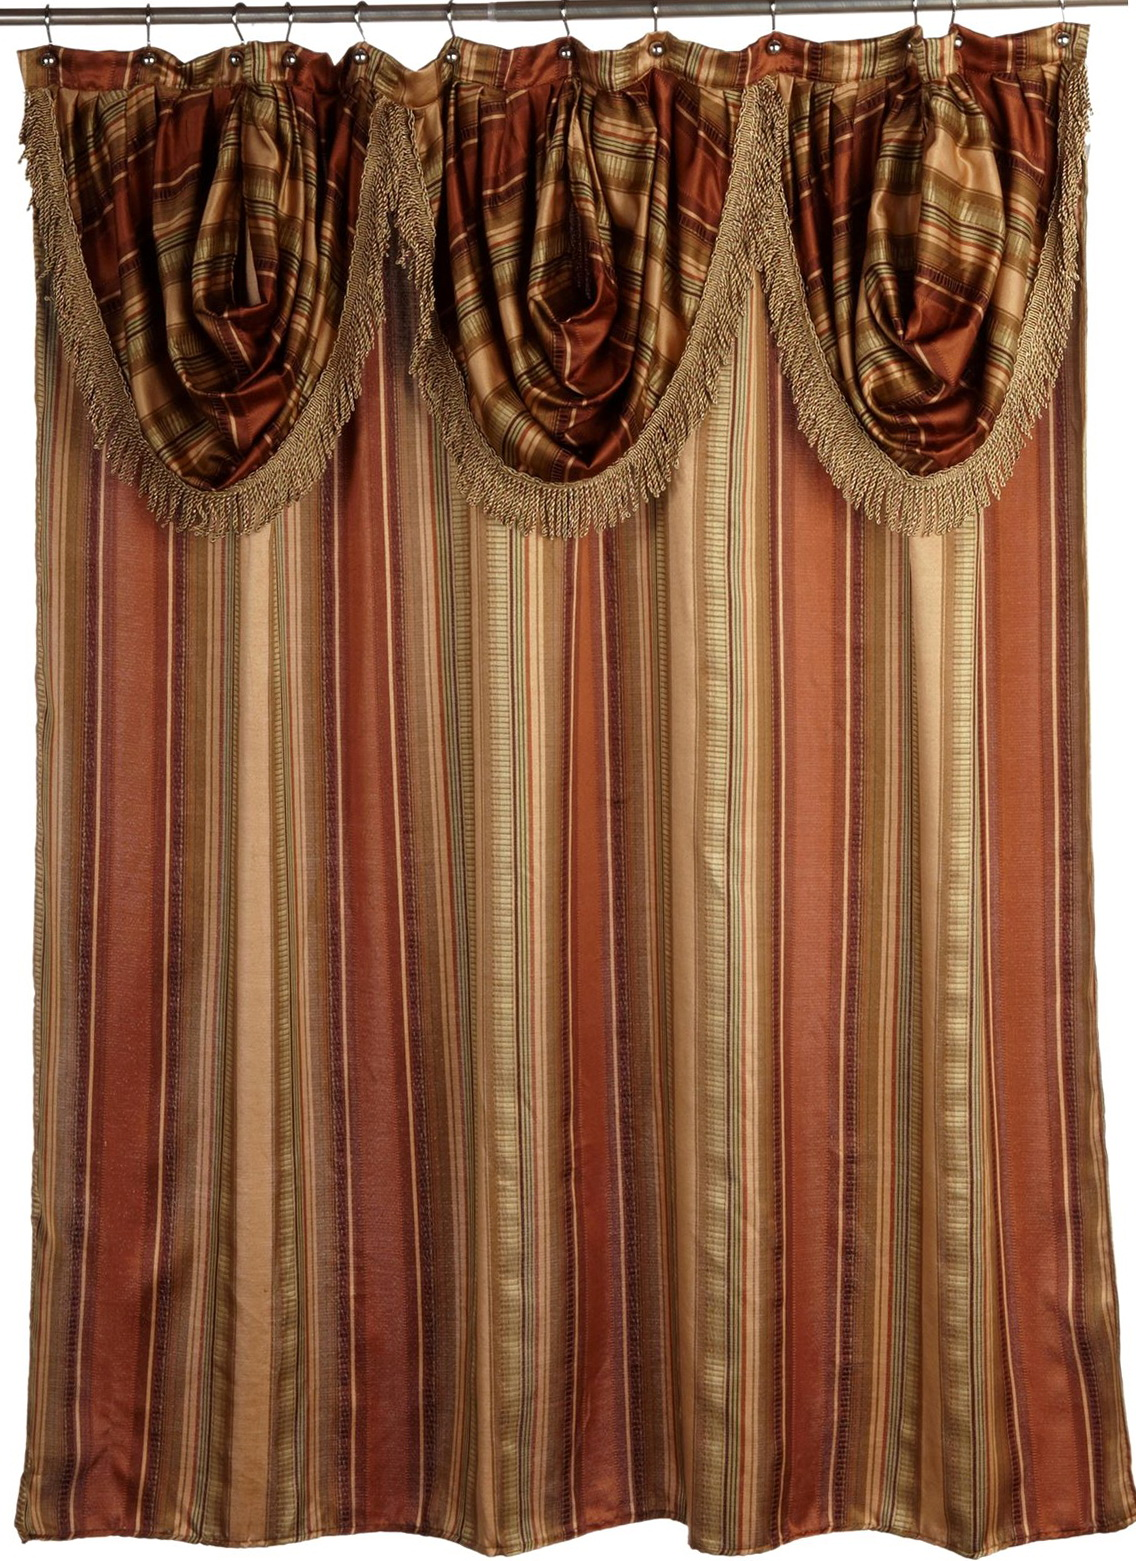 Curtain With Valance Attached Home Design Ideas